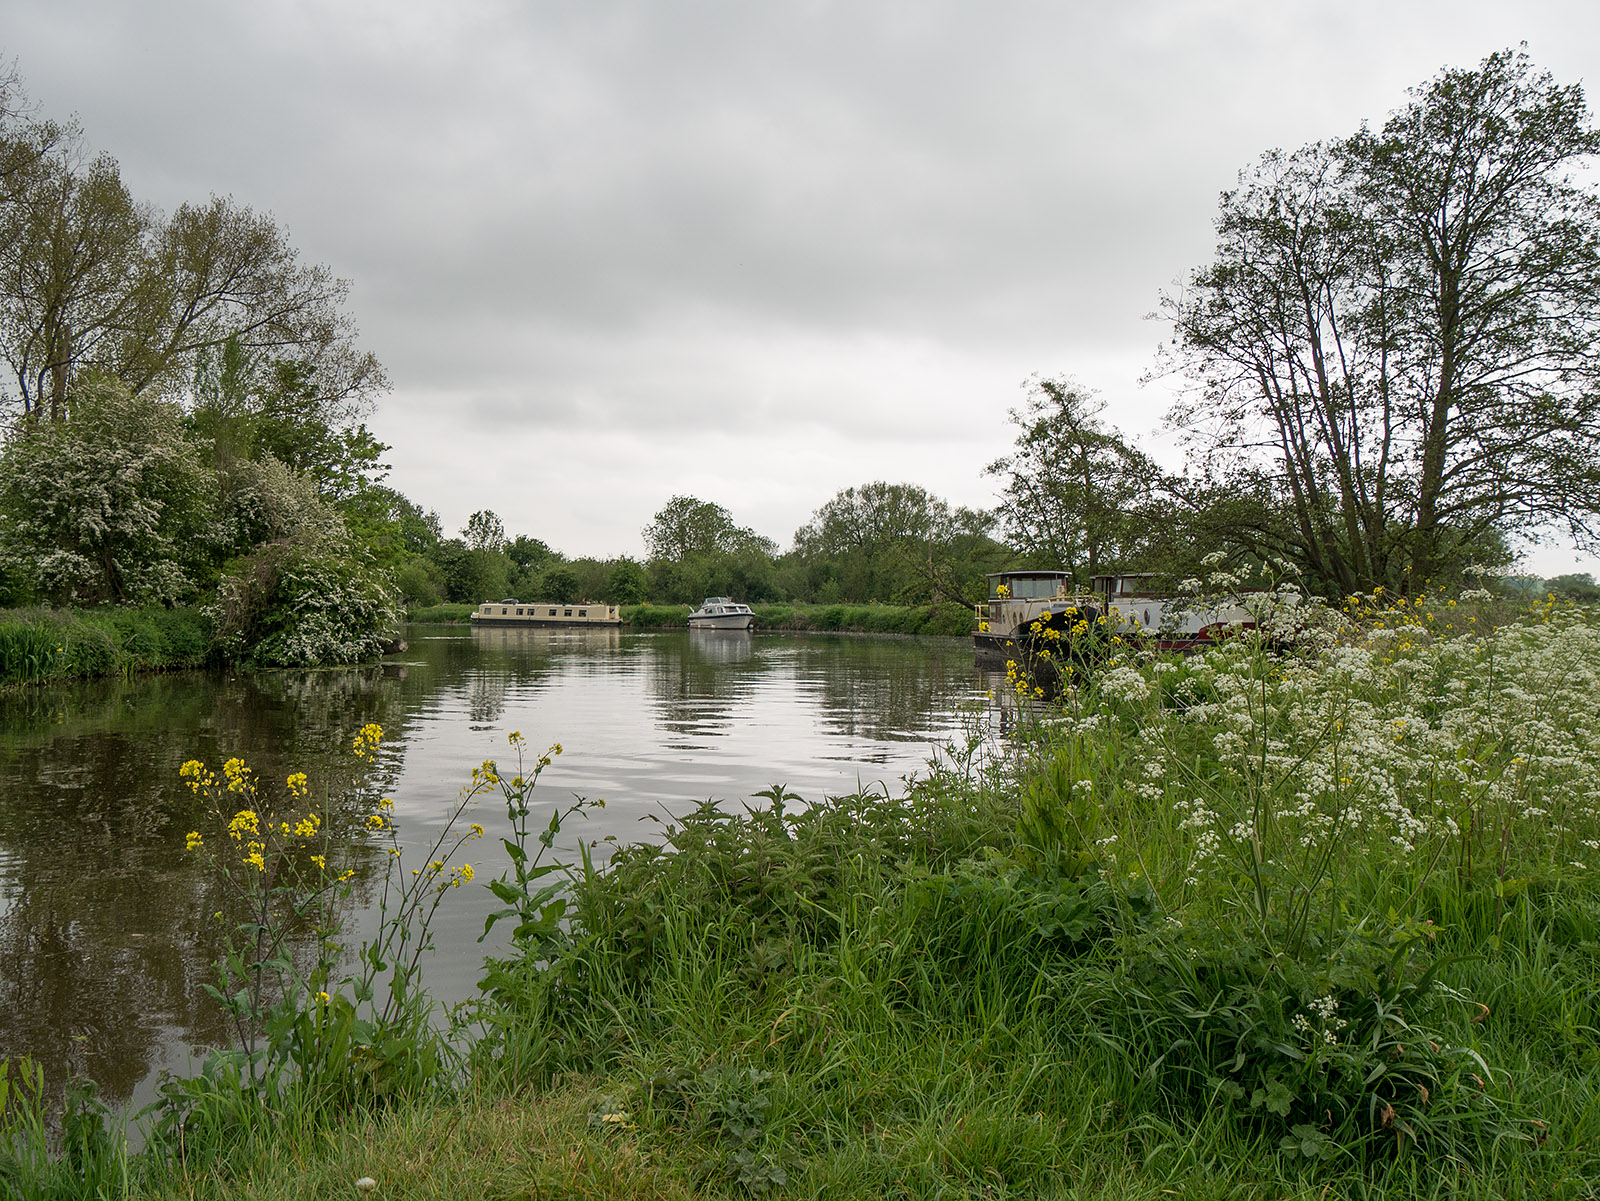 Bends in the river near Hallsmead Ait